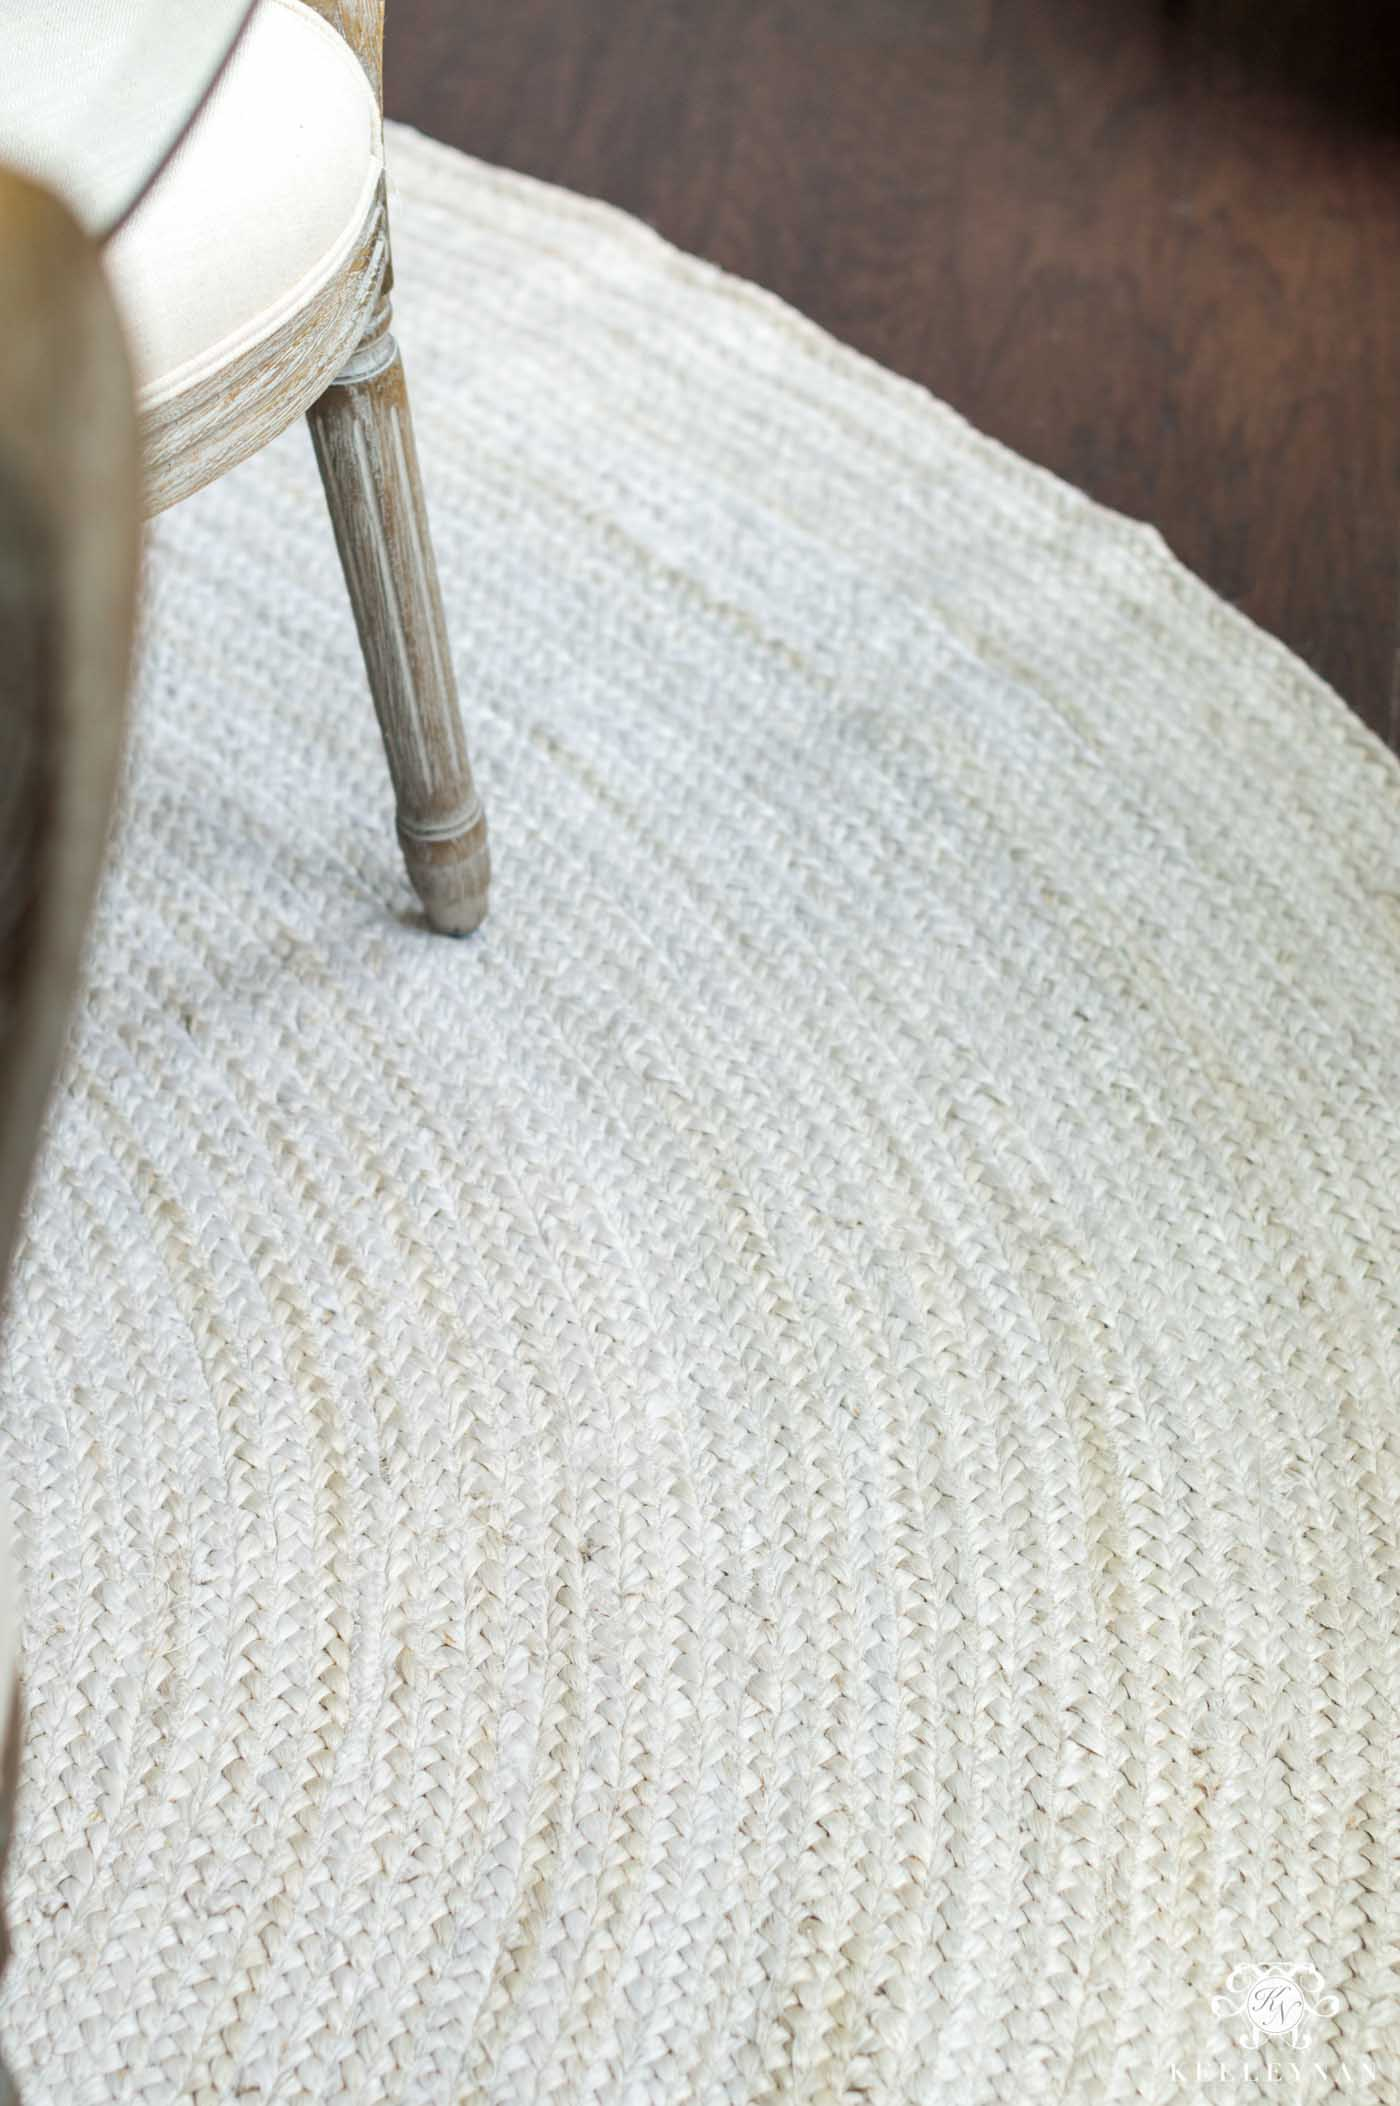 Inexpensive cream jute rug and others that are great for families and pets